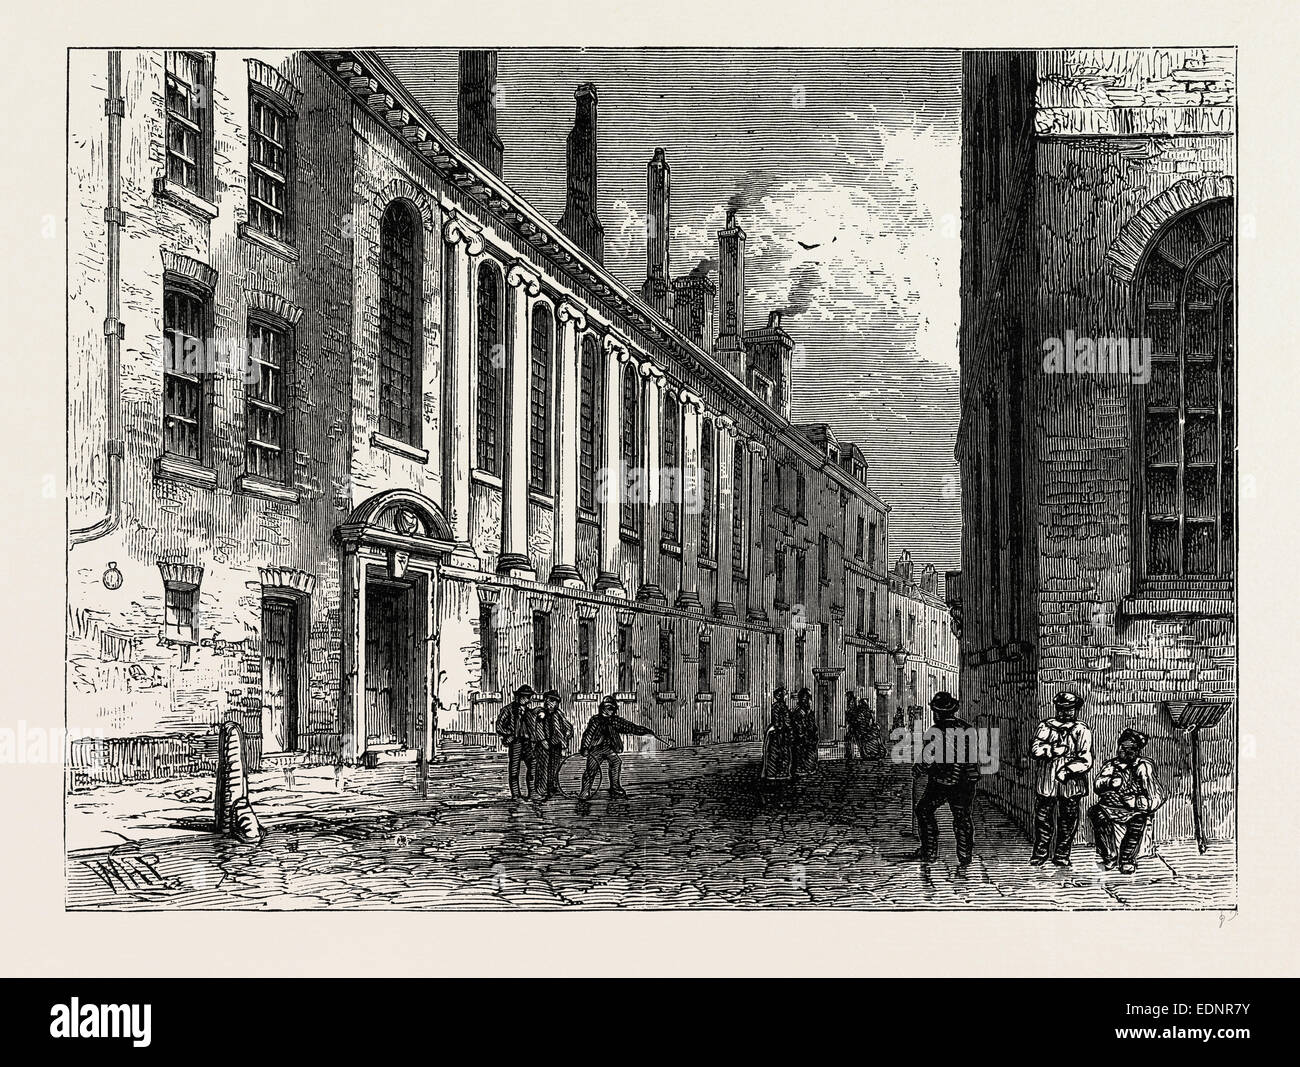 The Merchant's Taylors School, Suffolk Lane, London, UK, 19th century - Stock Image